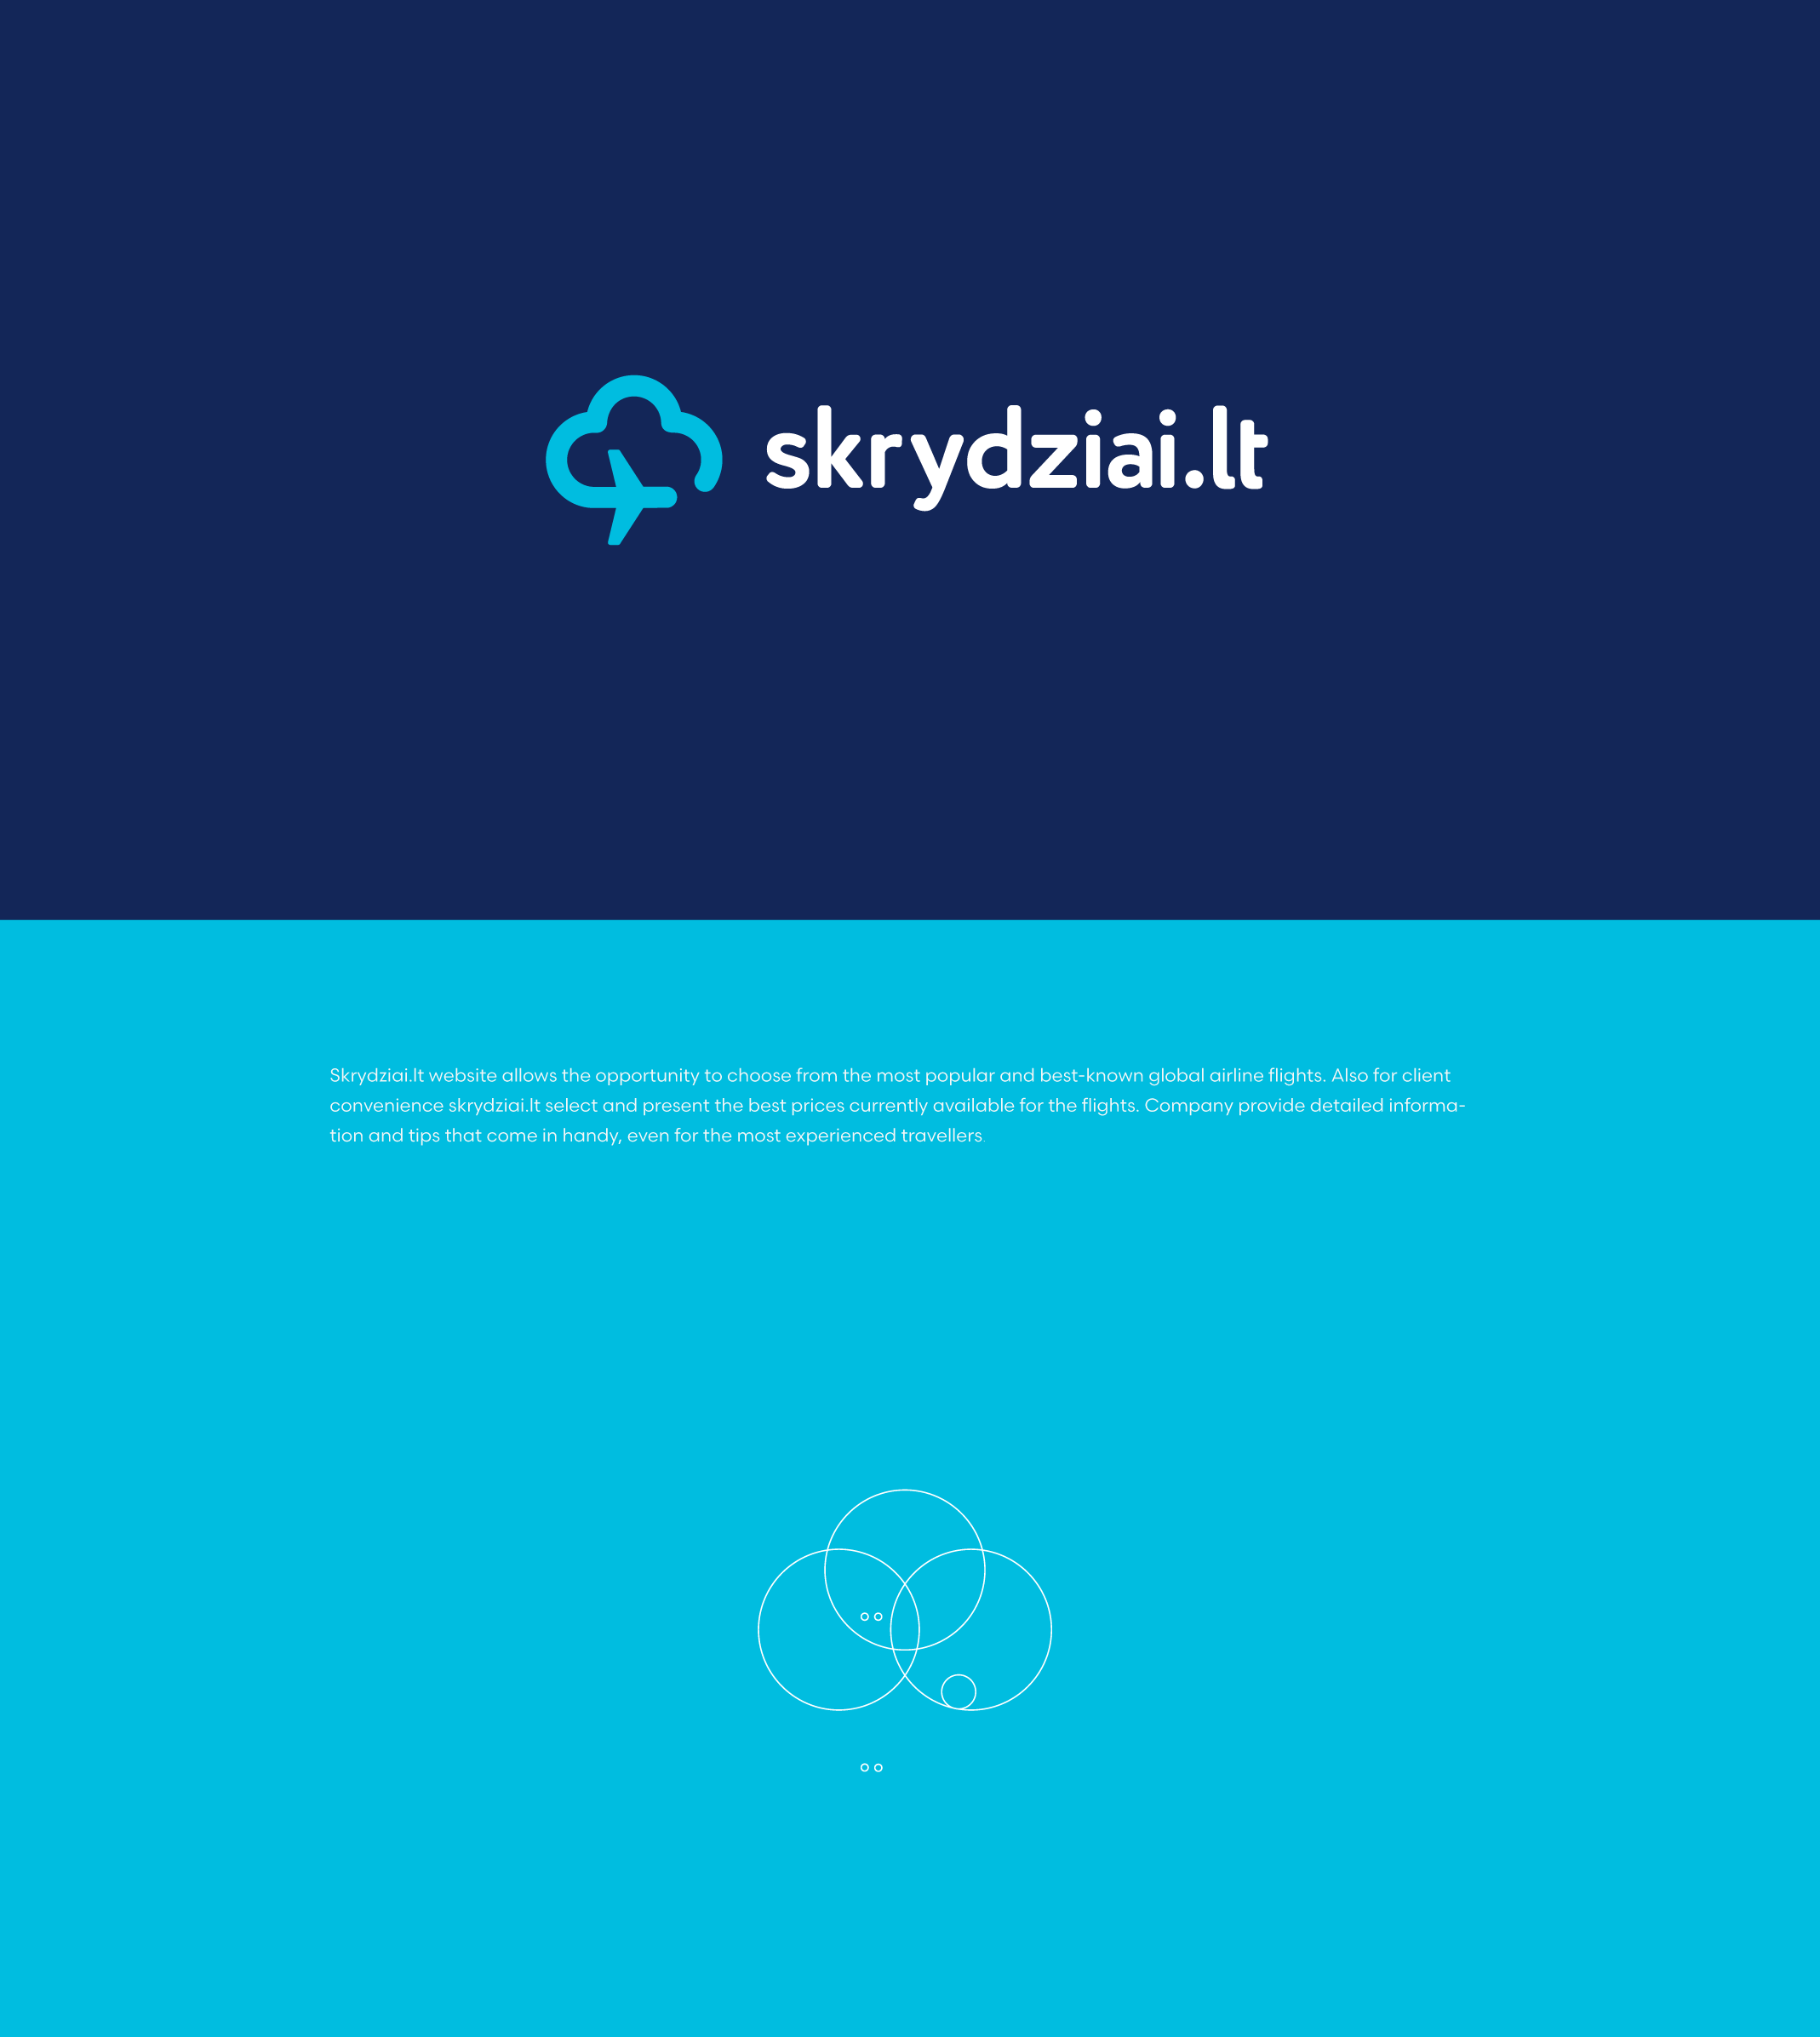 professional, flat, logo design. Combination of plane and cloud. plane logo, cloud logo.